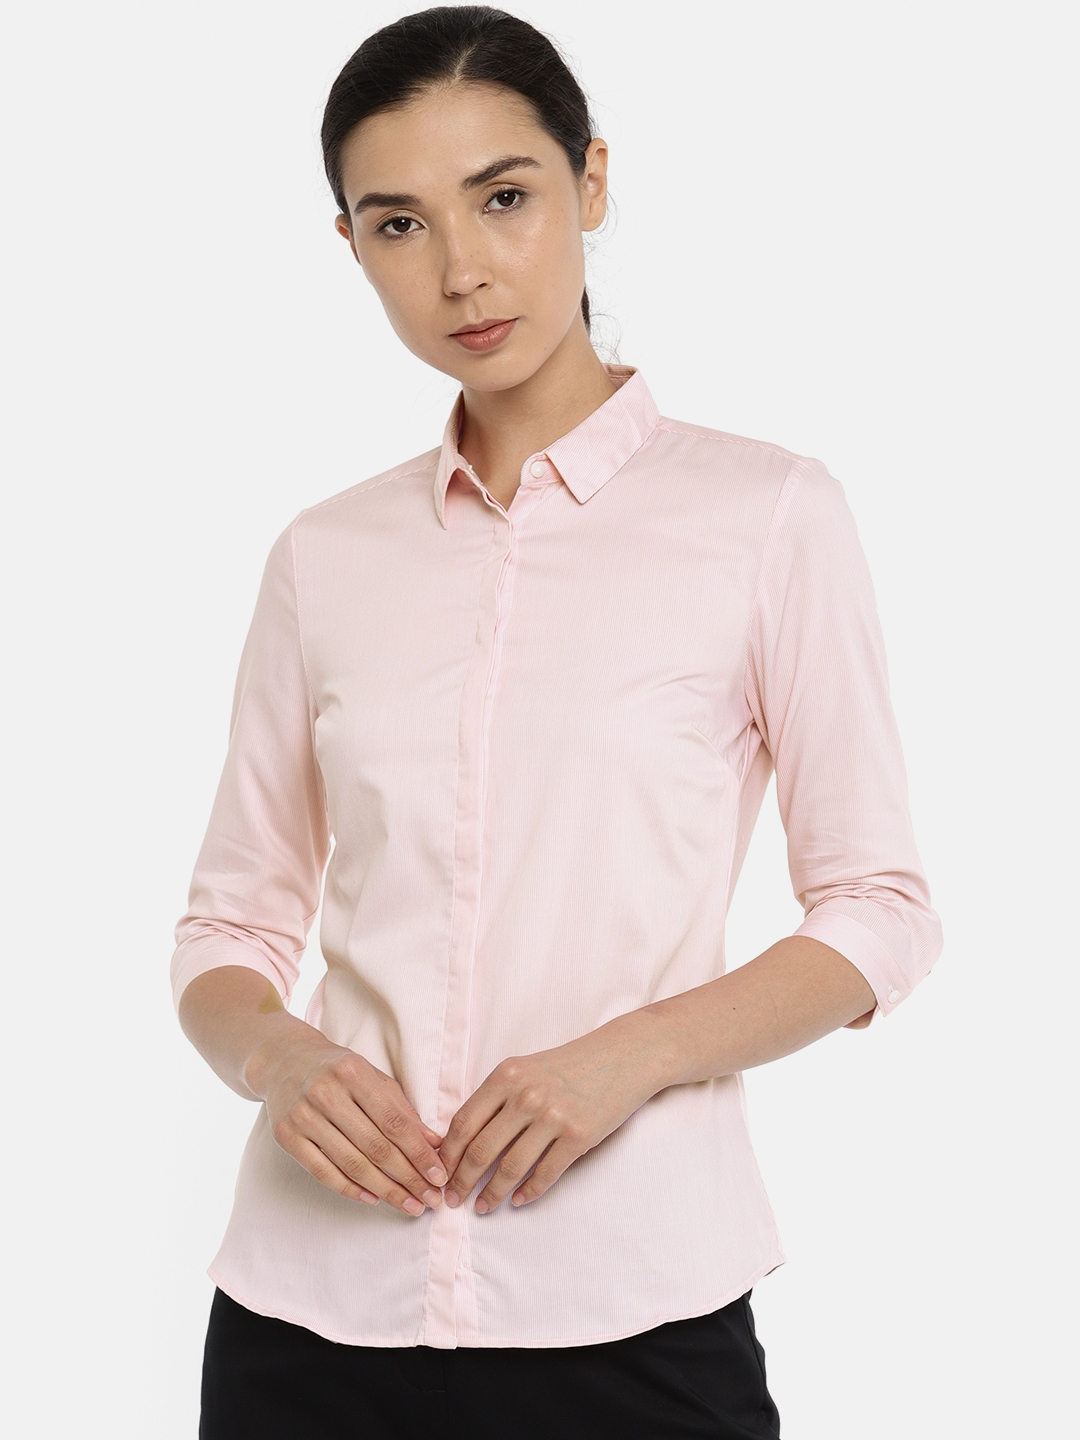 Van Heusen Woman Women Pink Regular Fit Striped Formal Shirt Van Heusen Woman Shirts